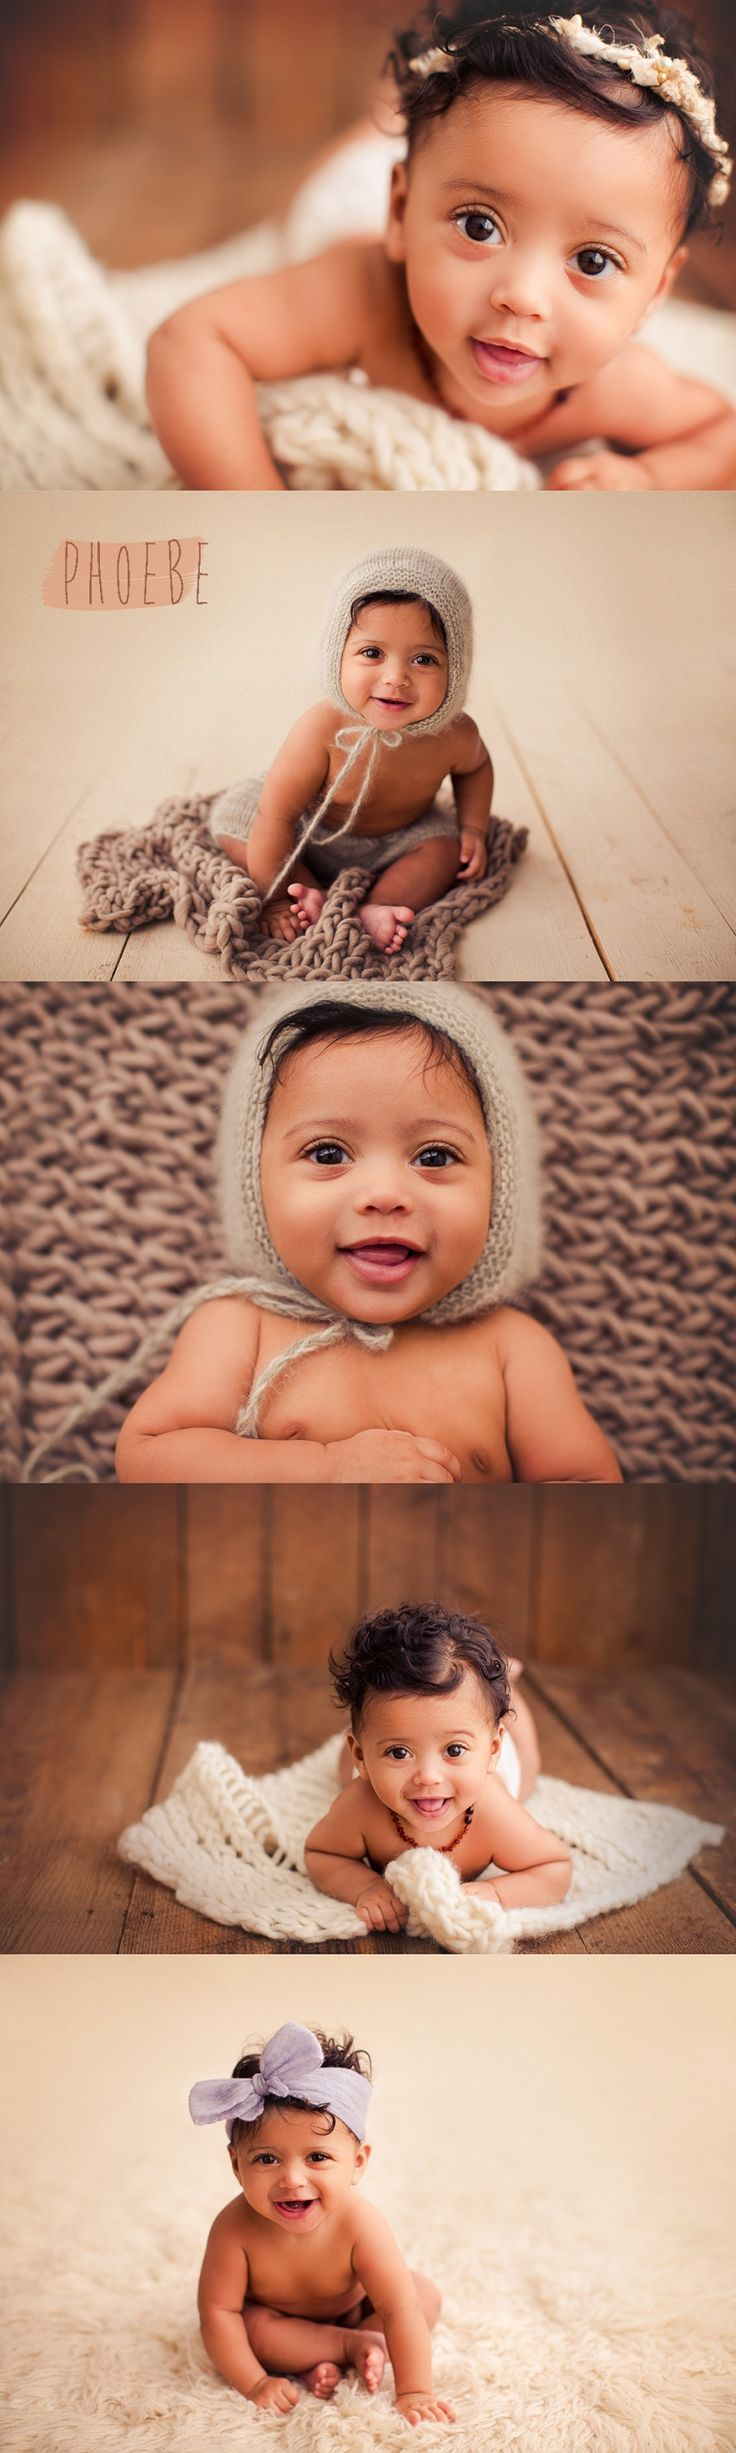 Erin Tole | Erin Tole Photography | Mini Sessions | Baby | Newborn Photography